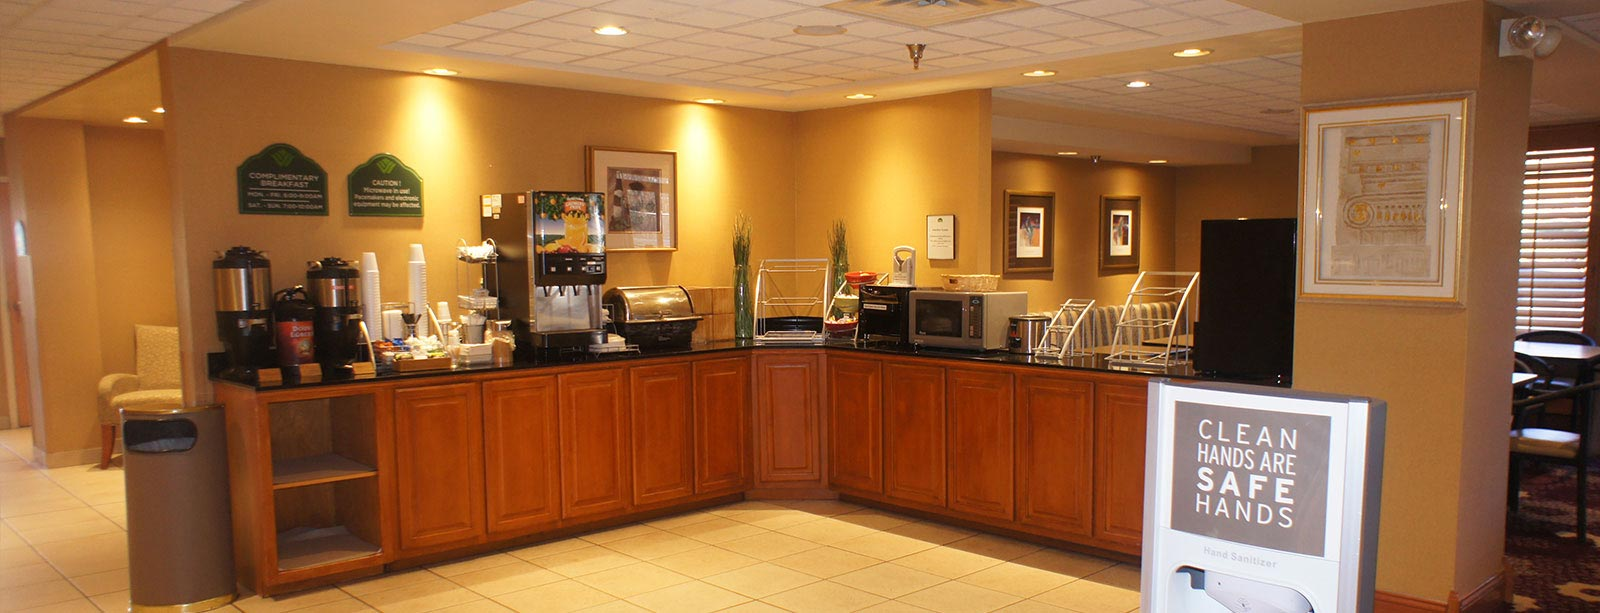 Hotel In Chattanooga, TN Near Hamilton Place Mall - Wingate by Wyndham